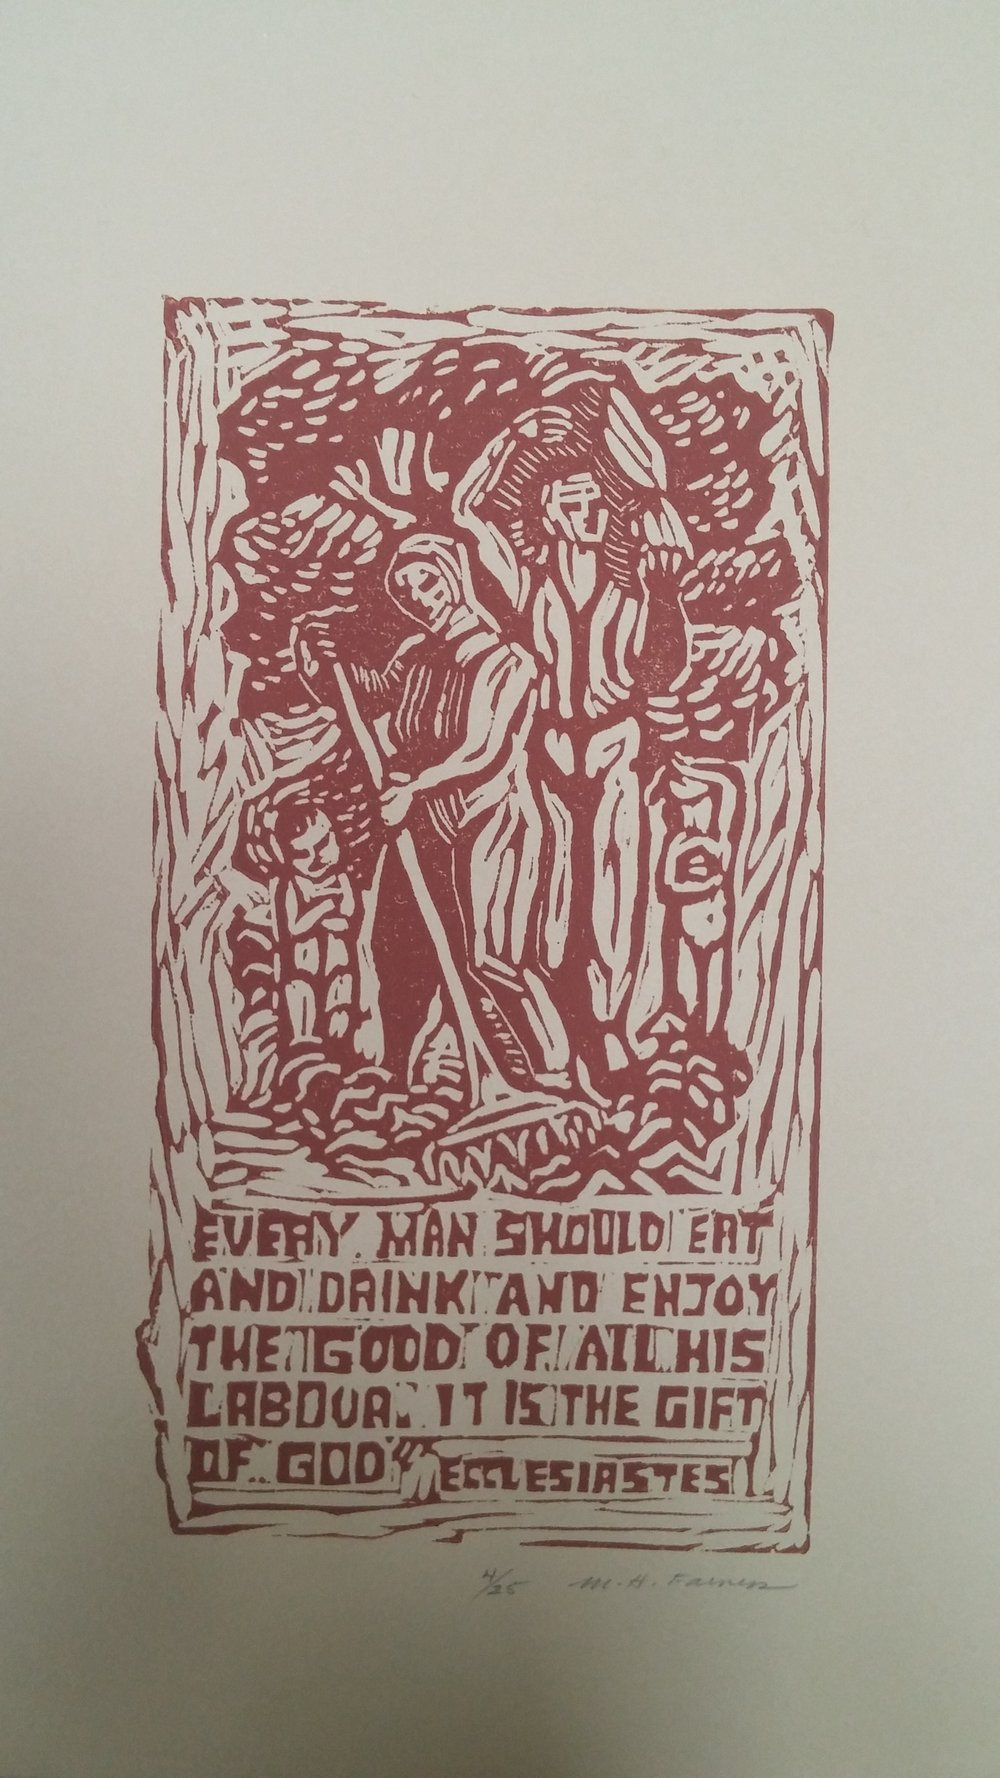 Ecclesiastes, Enjoy the Good of All His Labor, print, 11x15, 4 of 25 Pathways Original Print Collection